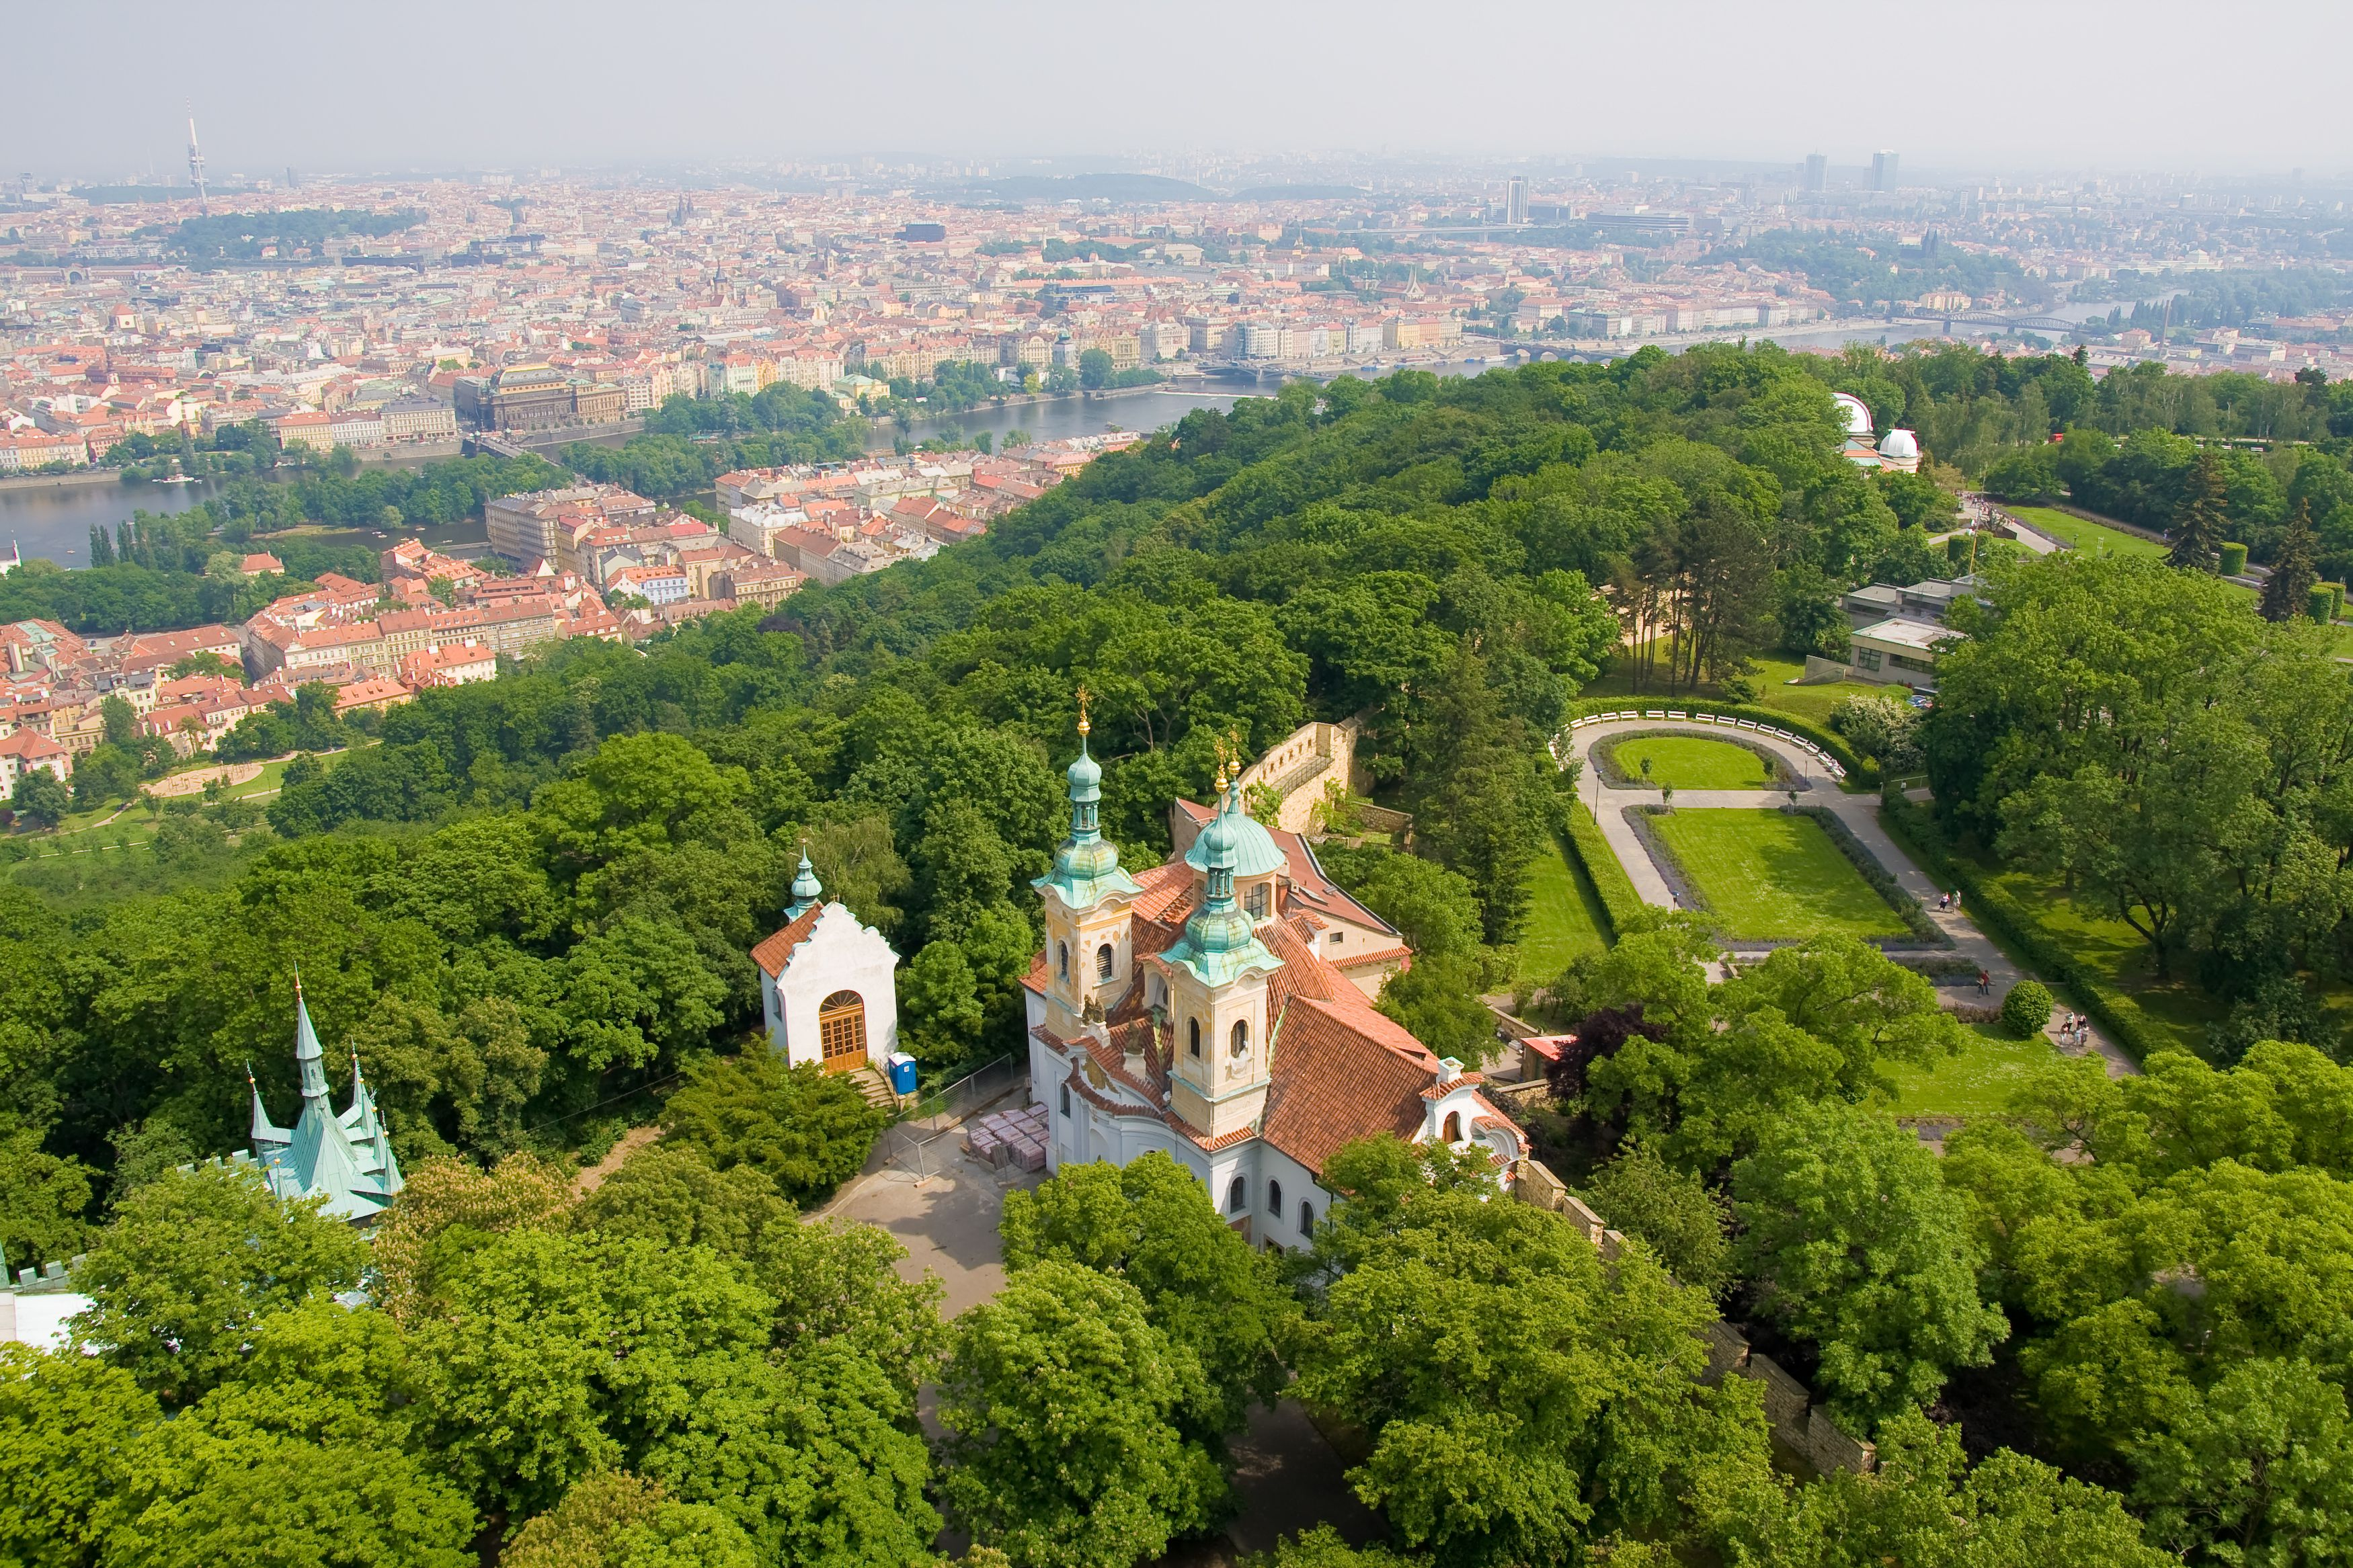 Prague Well on Way to Meet City's Goal of Planting Million Trees in Eight Years